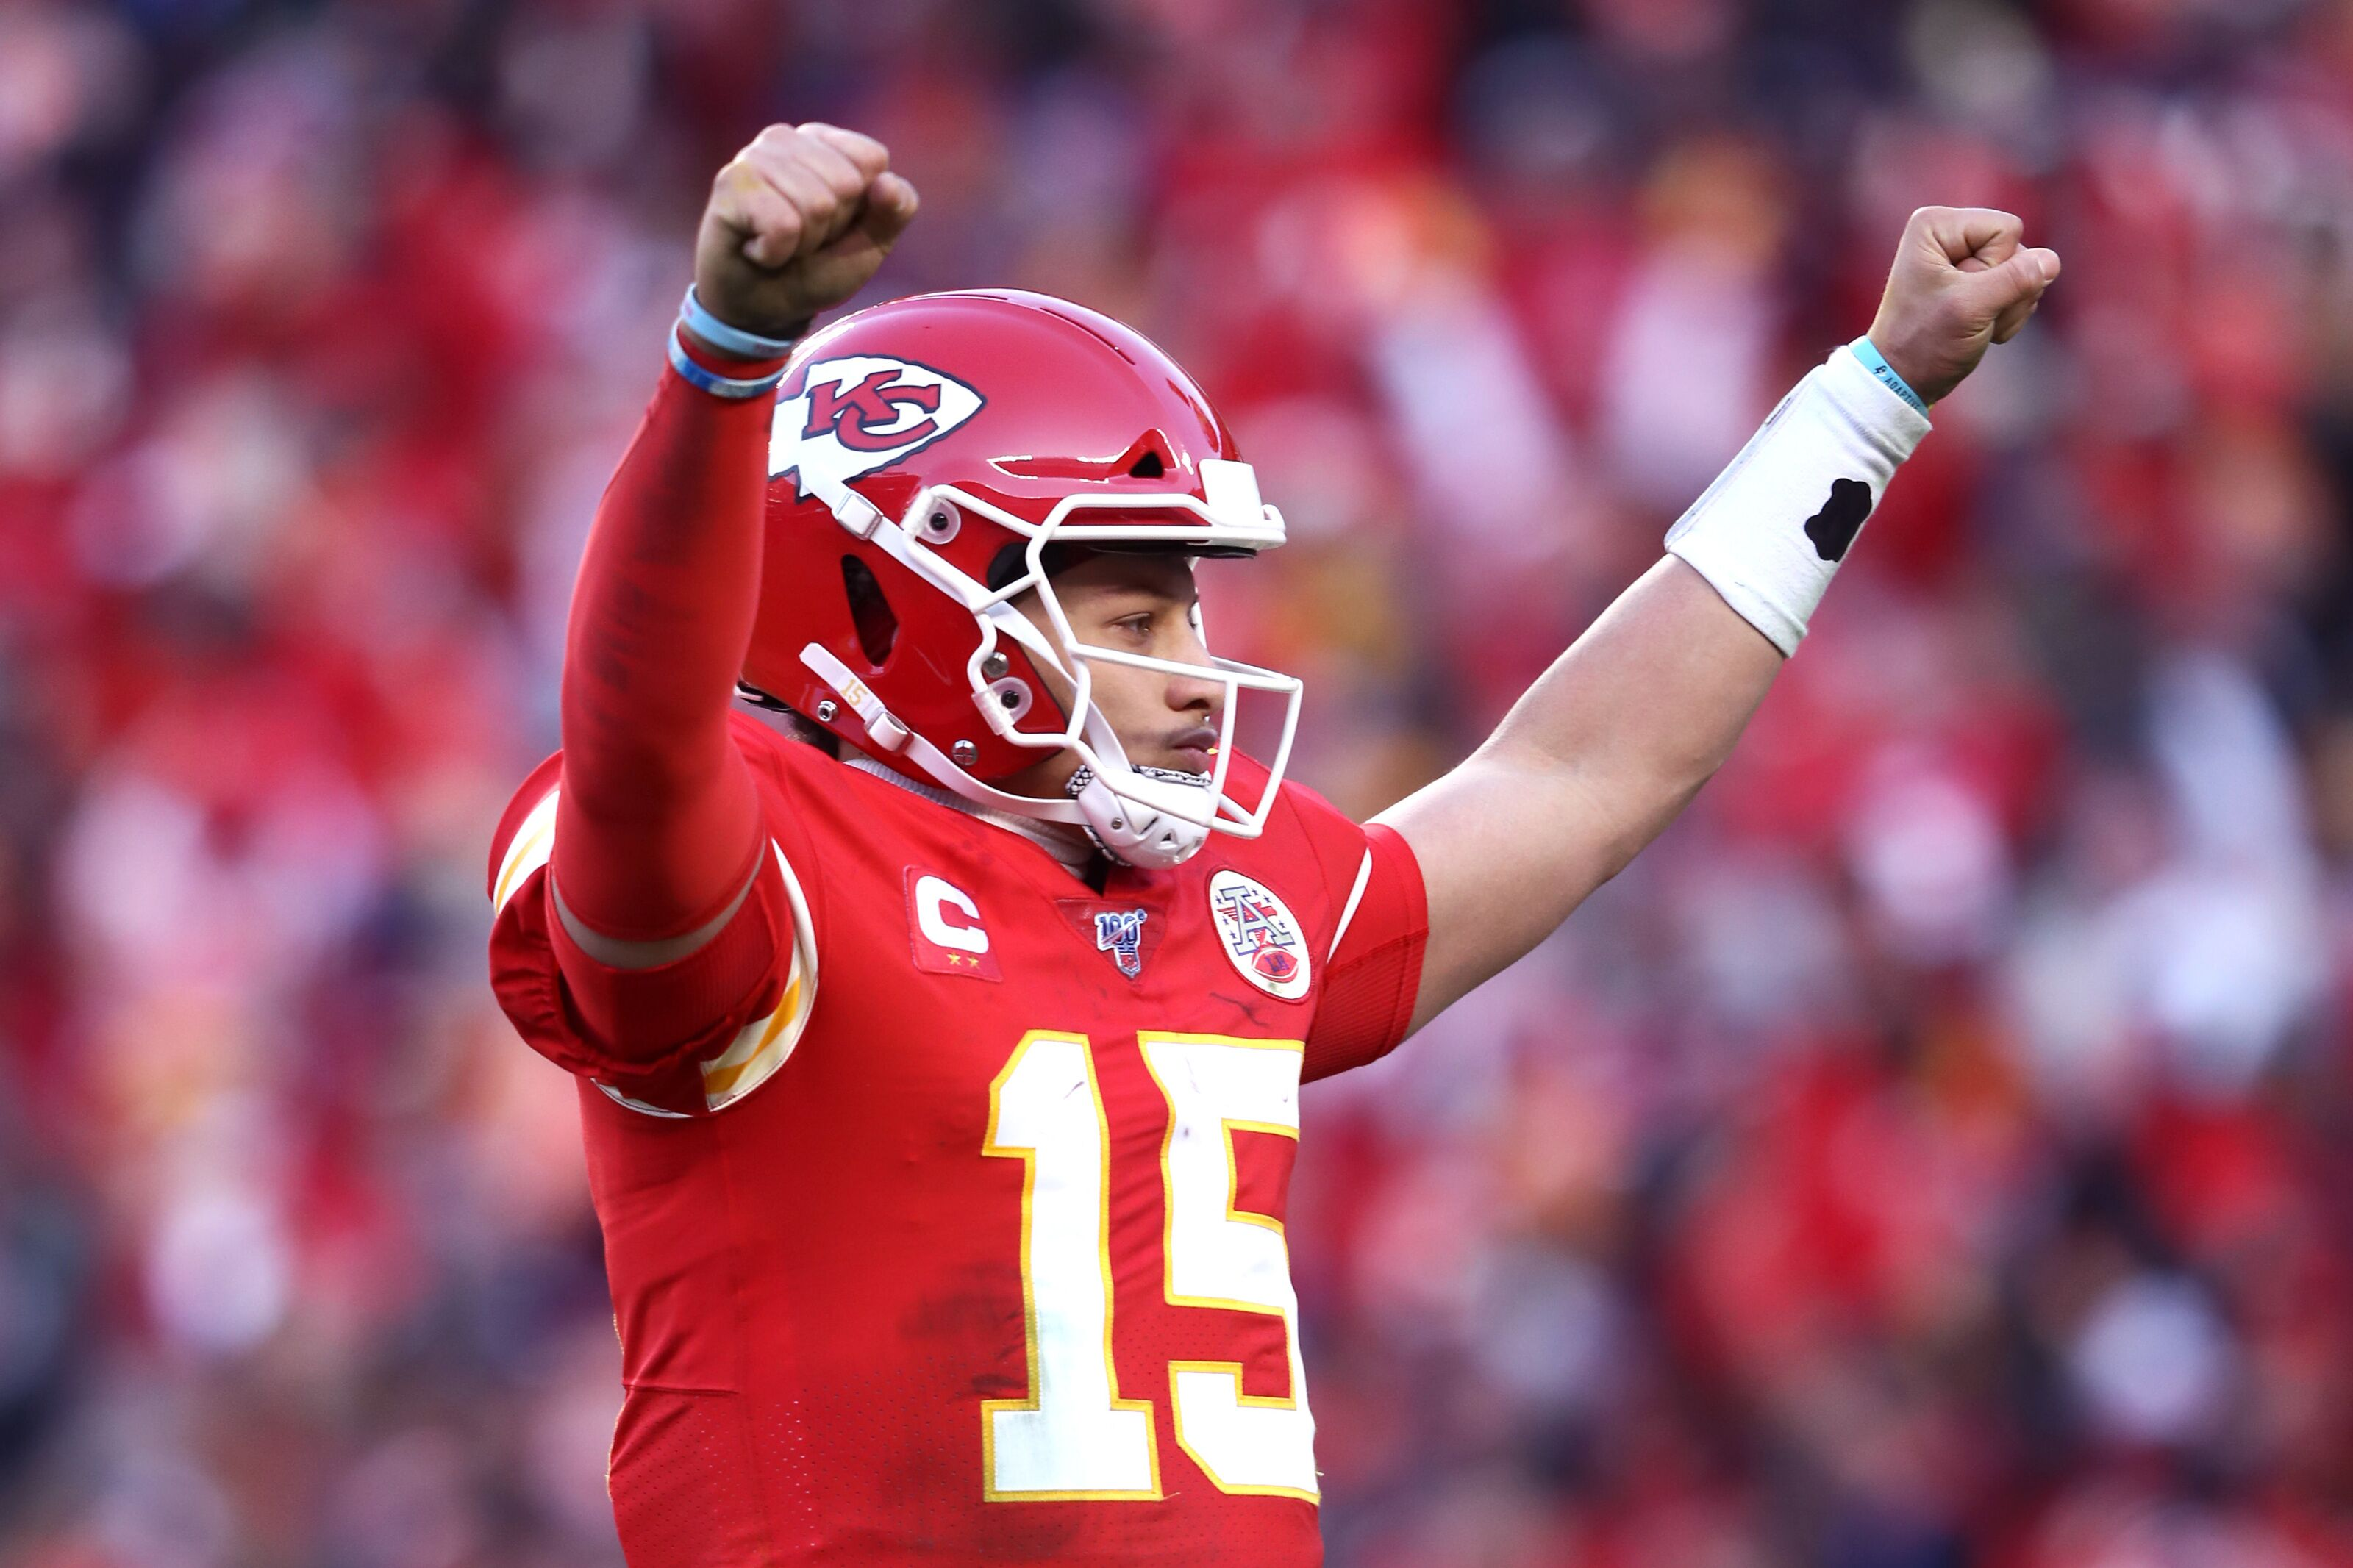 Kansas City Chiefs advance to Super Bowl LIV with win over Titans